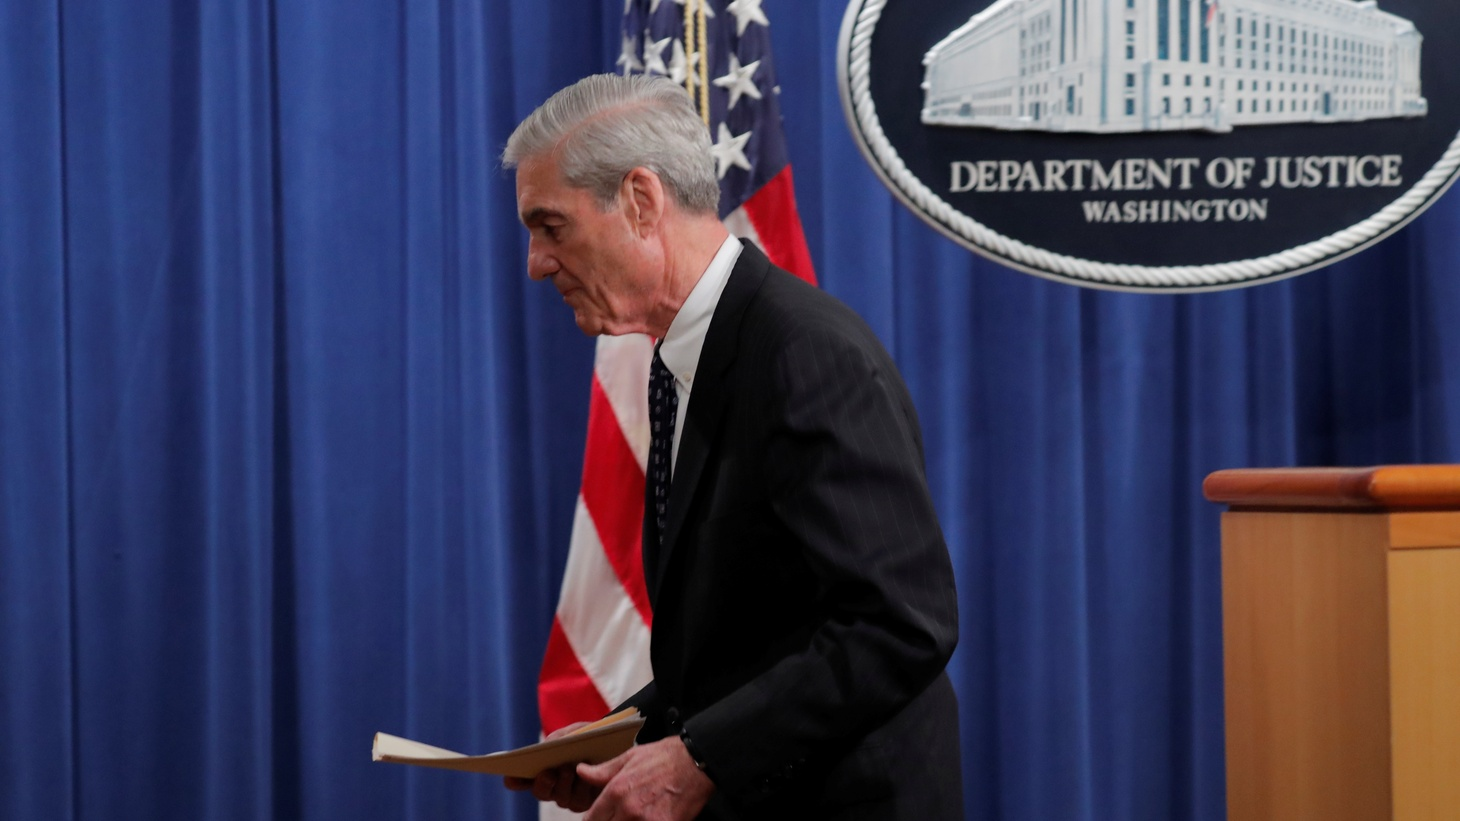 U.S. Special Counsel Robert Mueller departs after delivering a statement on his investigation into Russian interference in the 2016 U.S. presidential election at the Justice Department in Washington, U.S., May 29, 2019.